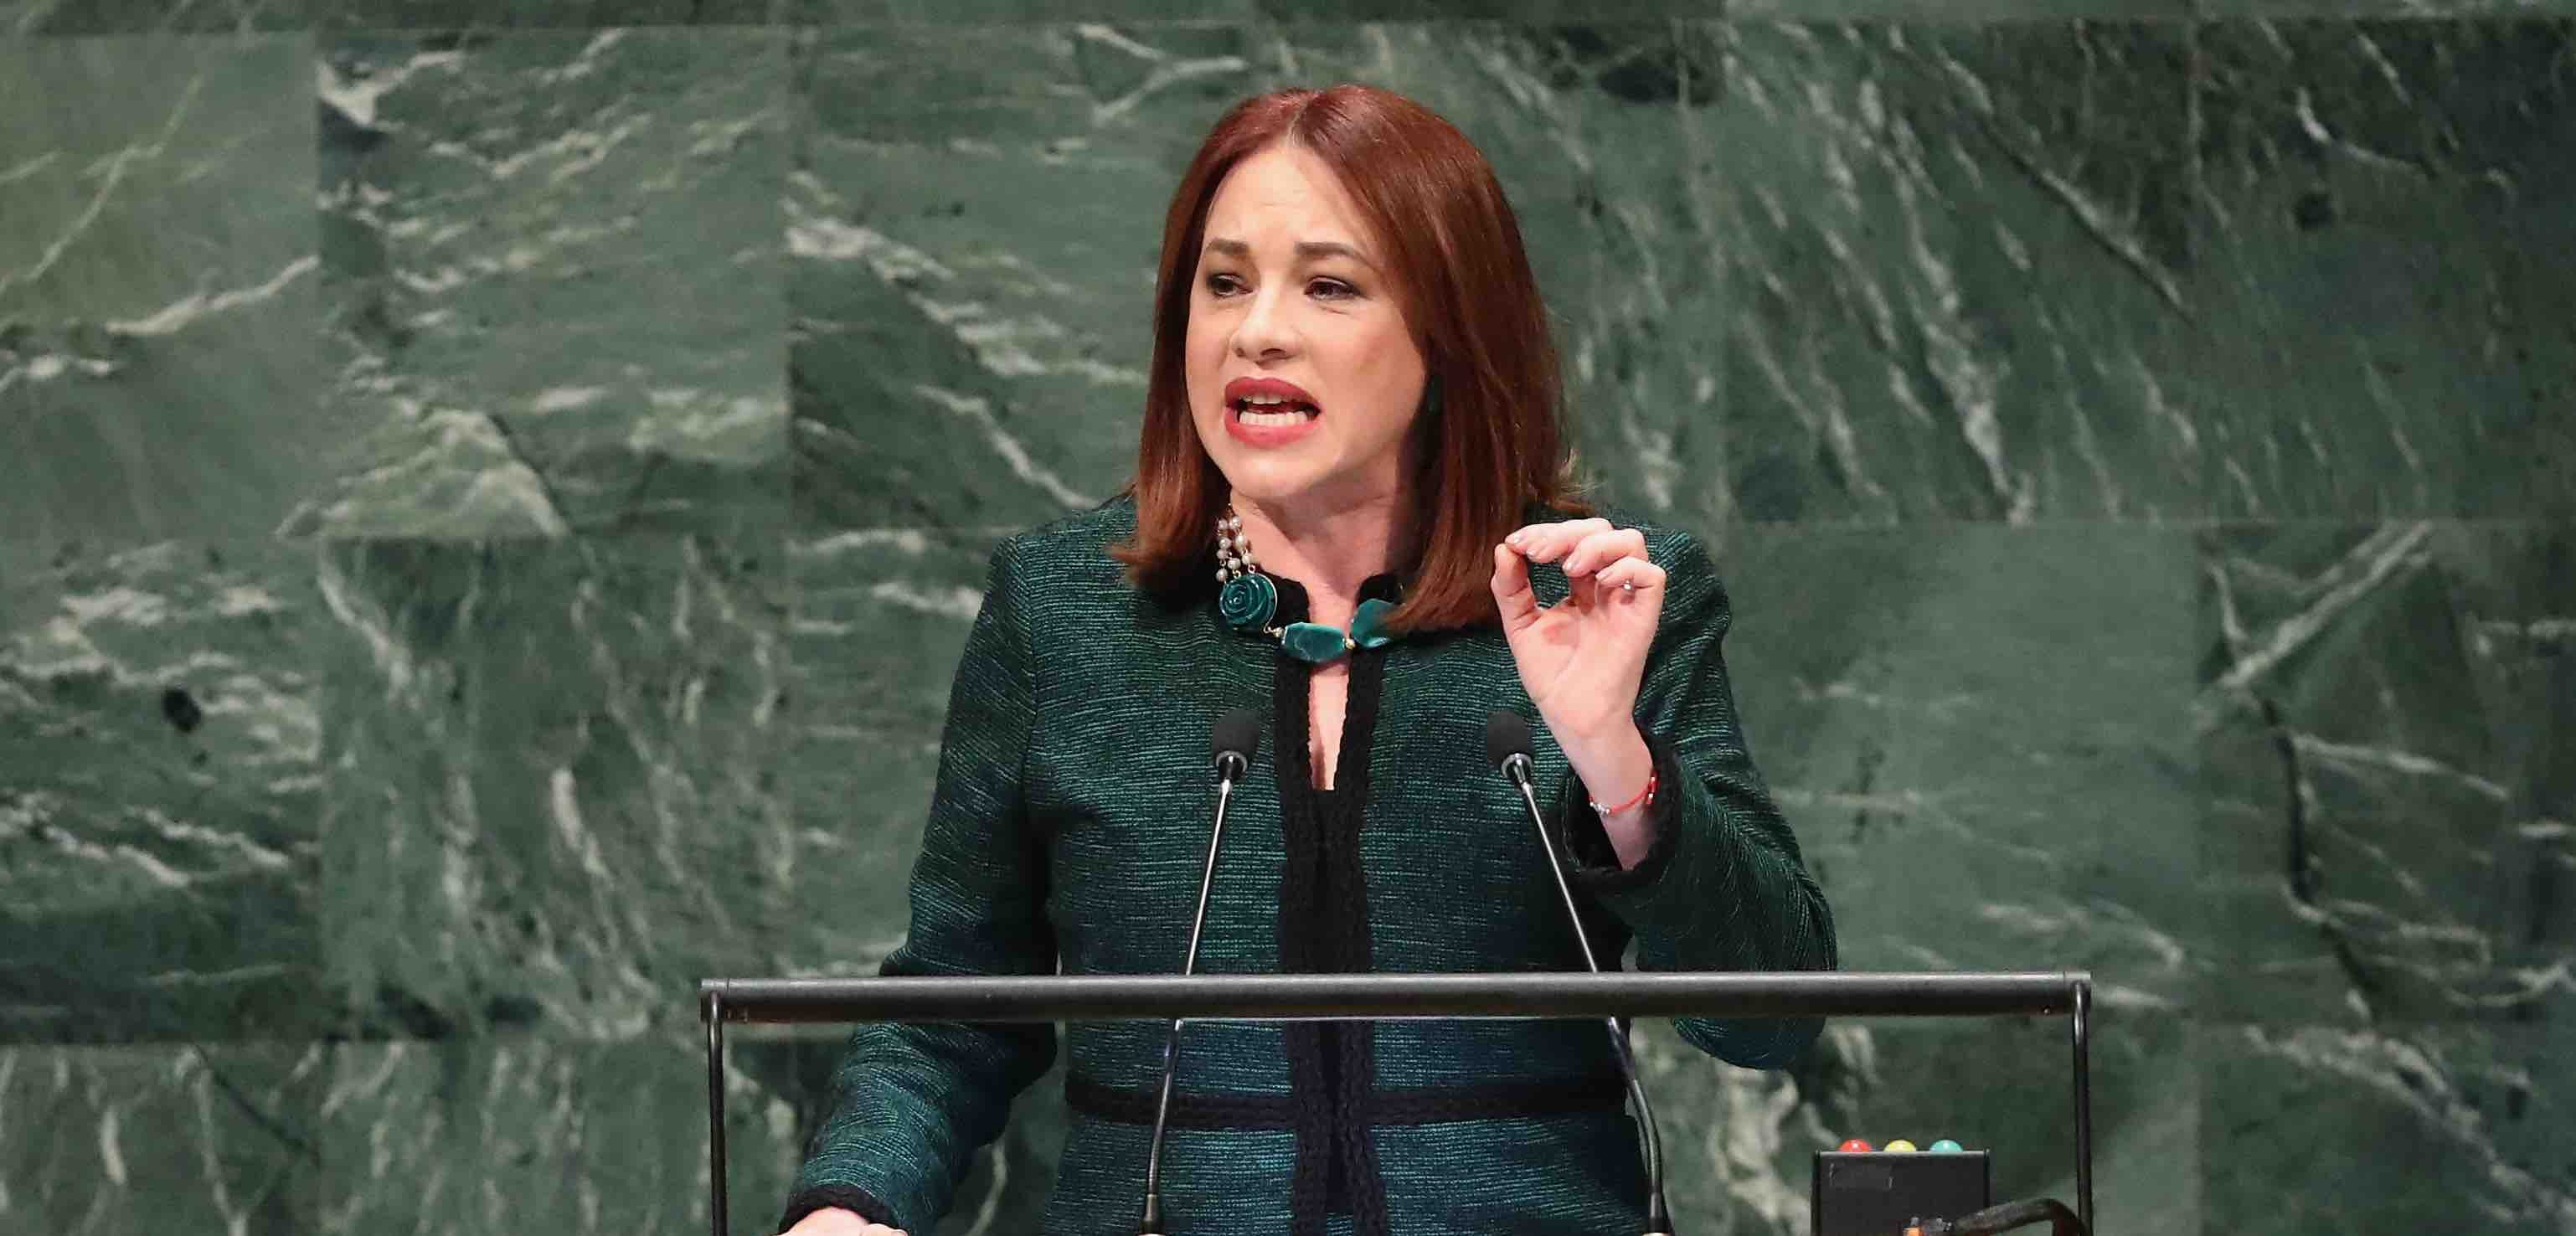 María Fernanda Espinosa Made History As UN General Assembly's First Latin American Woman President